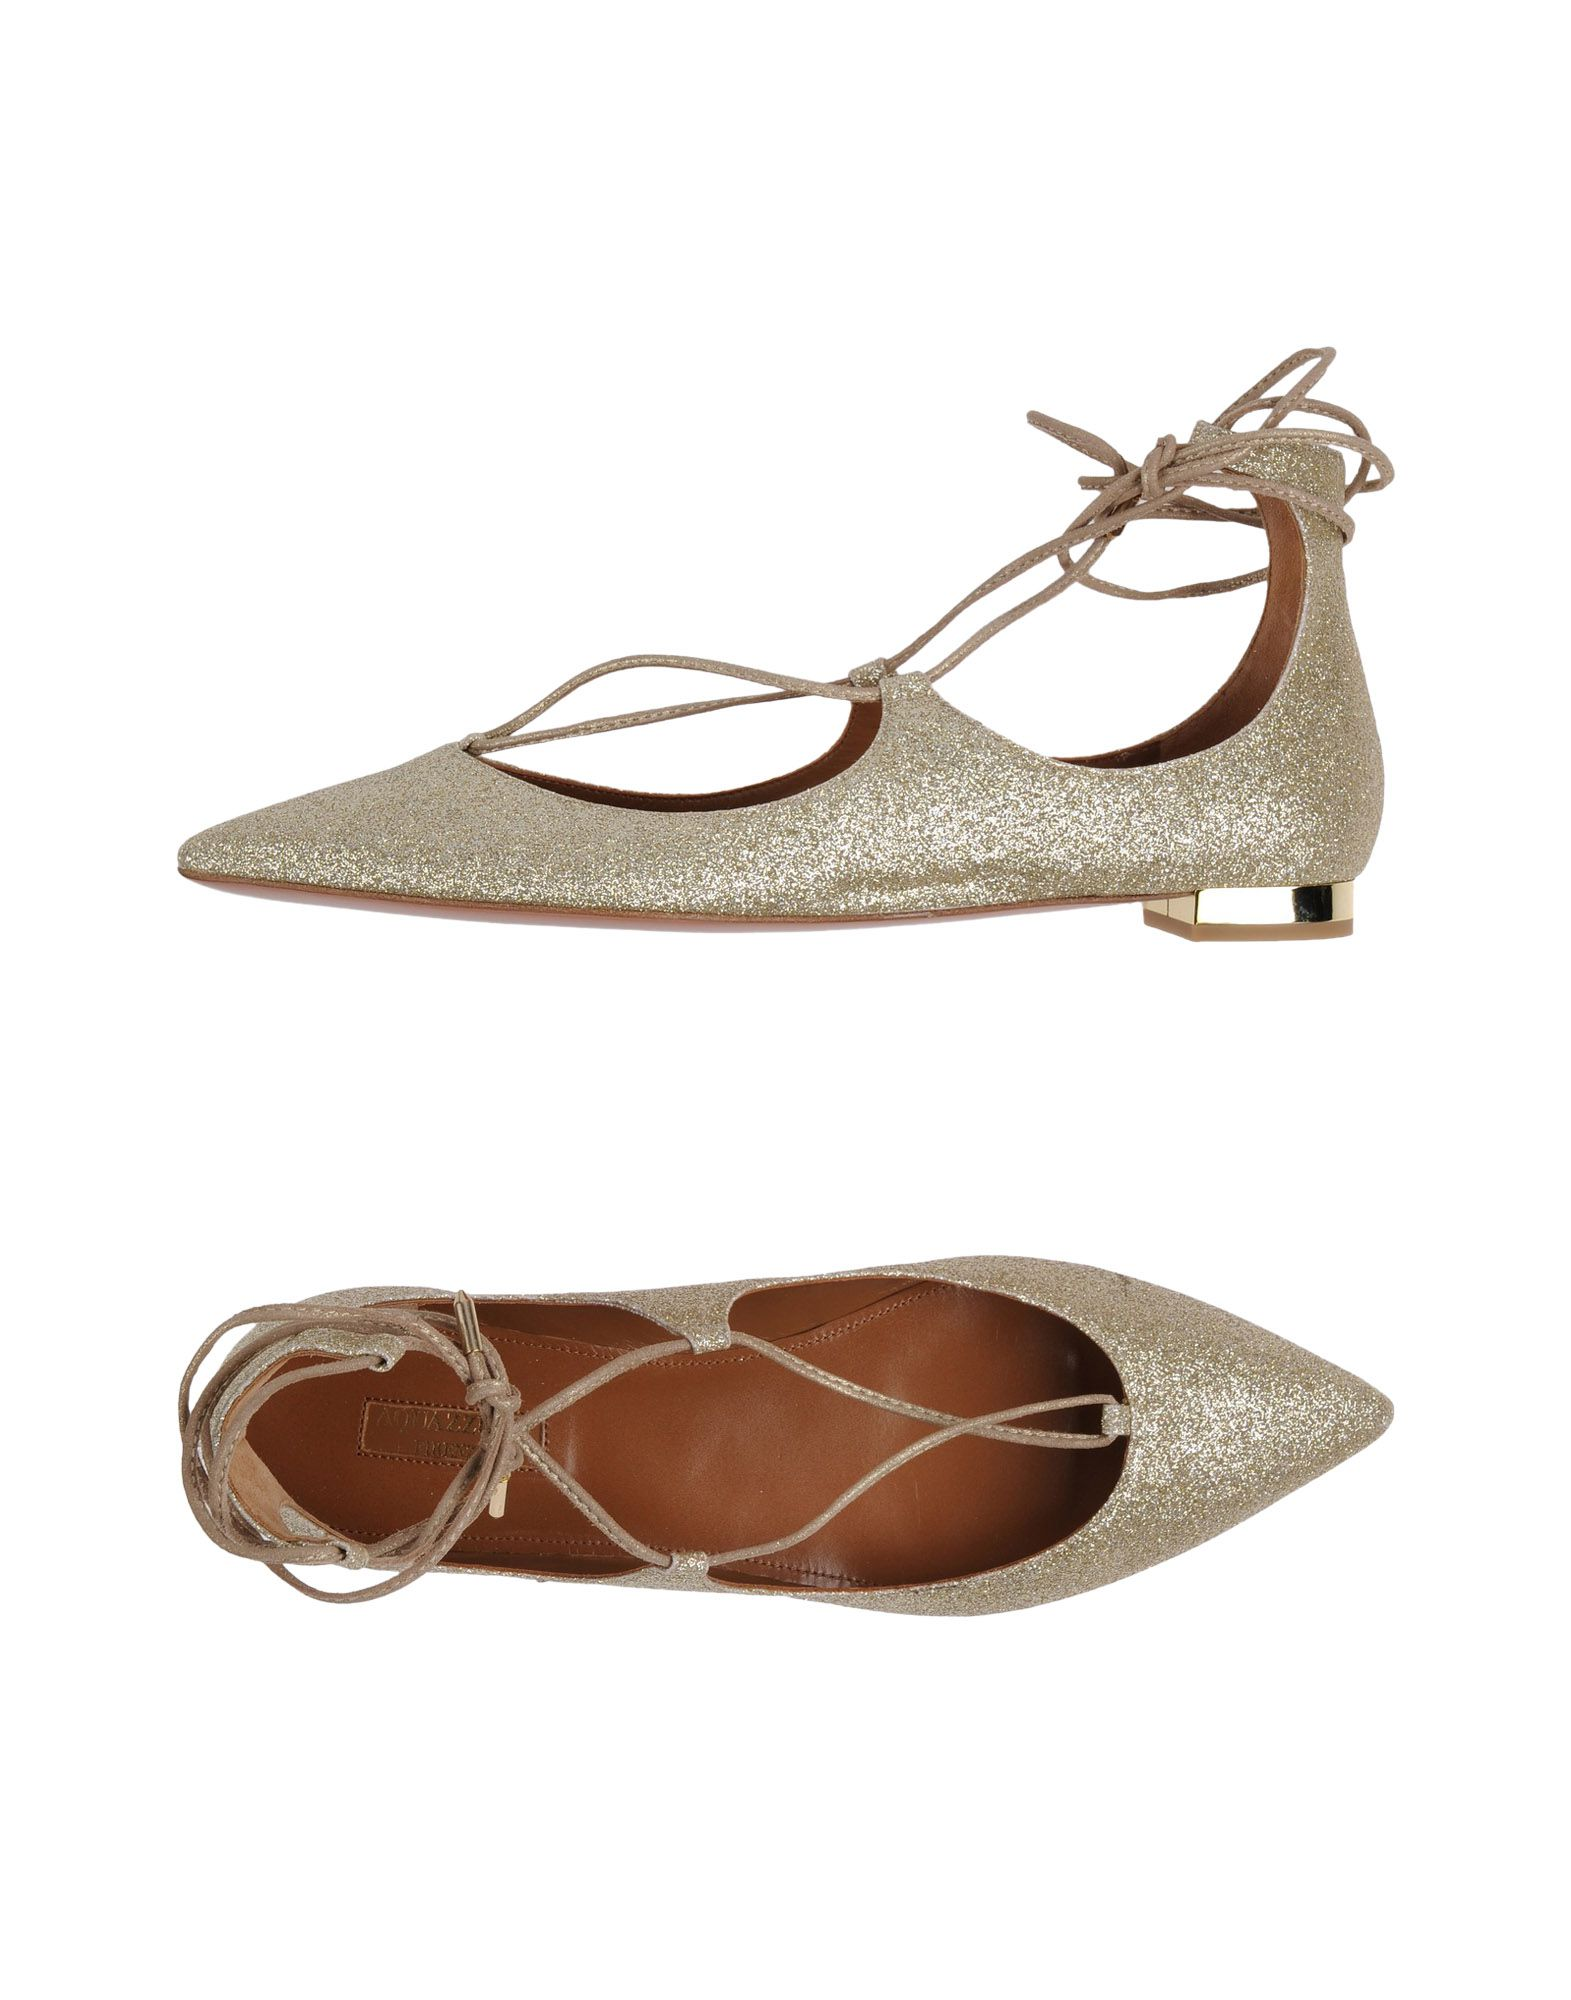 Aquazzura on Ballet Flats - Women Aquazzura Ballet Flats online on Aquazzura  Australia - 11135553JF b7b0ed